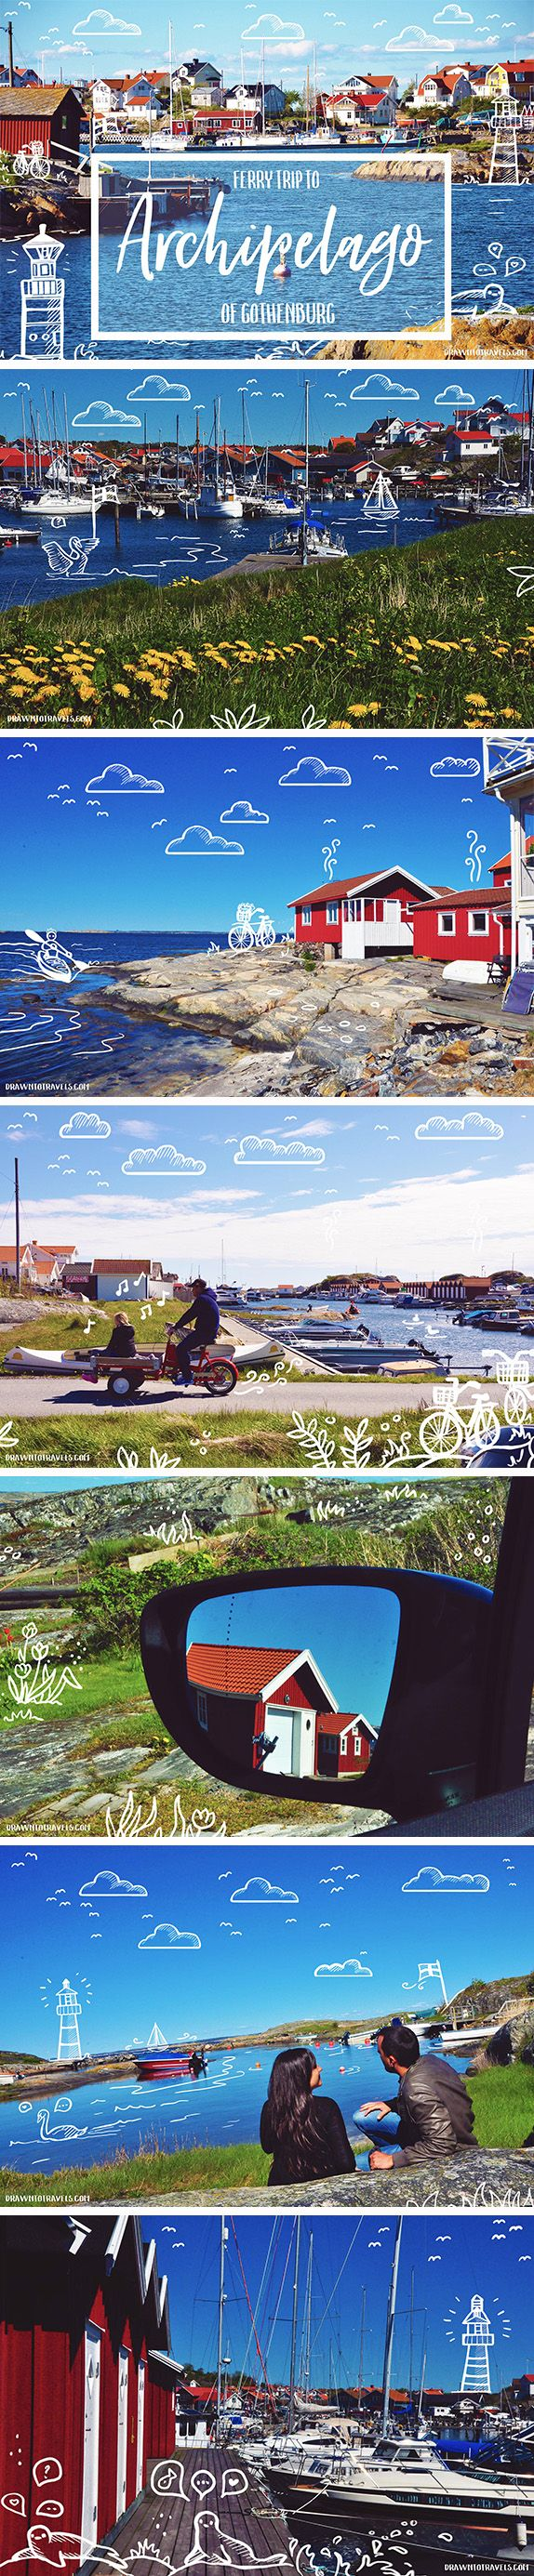 drawntotravels.com: The archipelago of Gothenburg is one of the Sweden's most beautiful rocky island formations, with many picturesque fisherman villages.